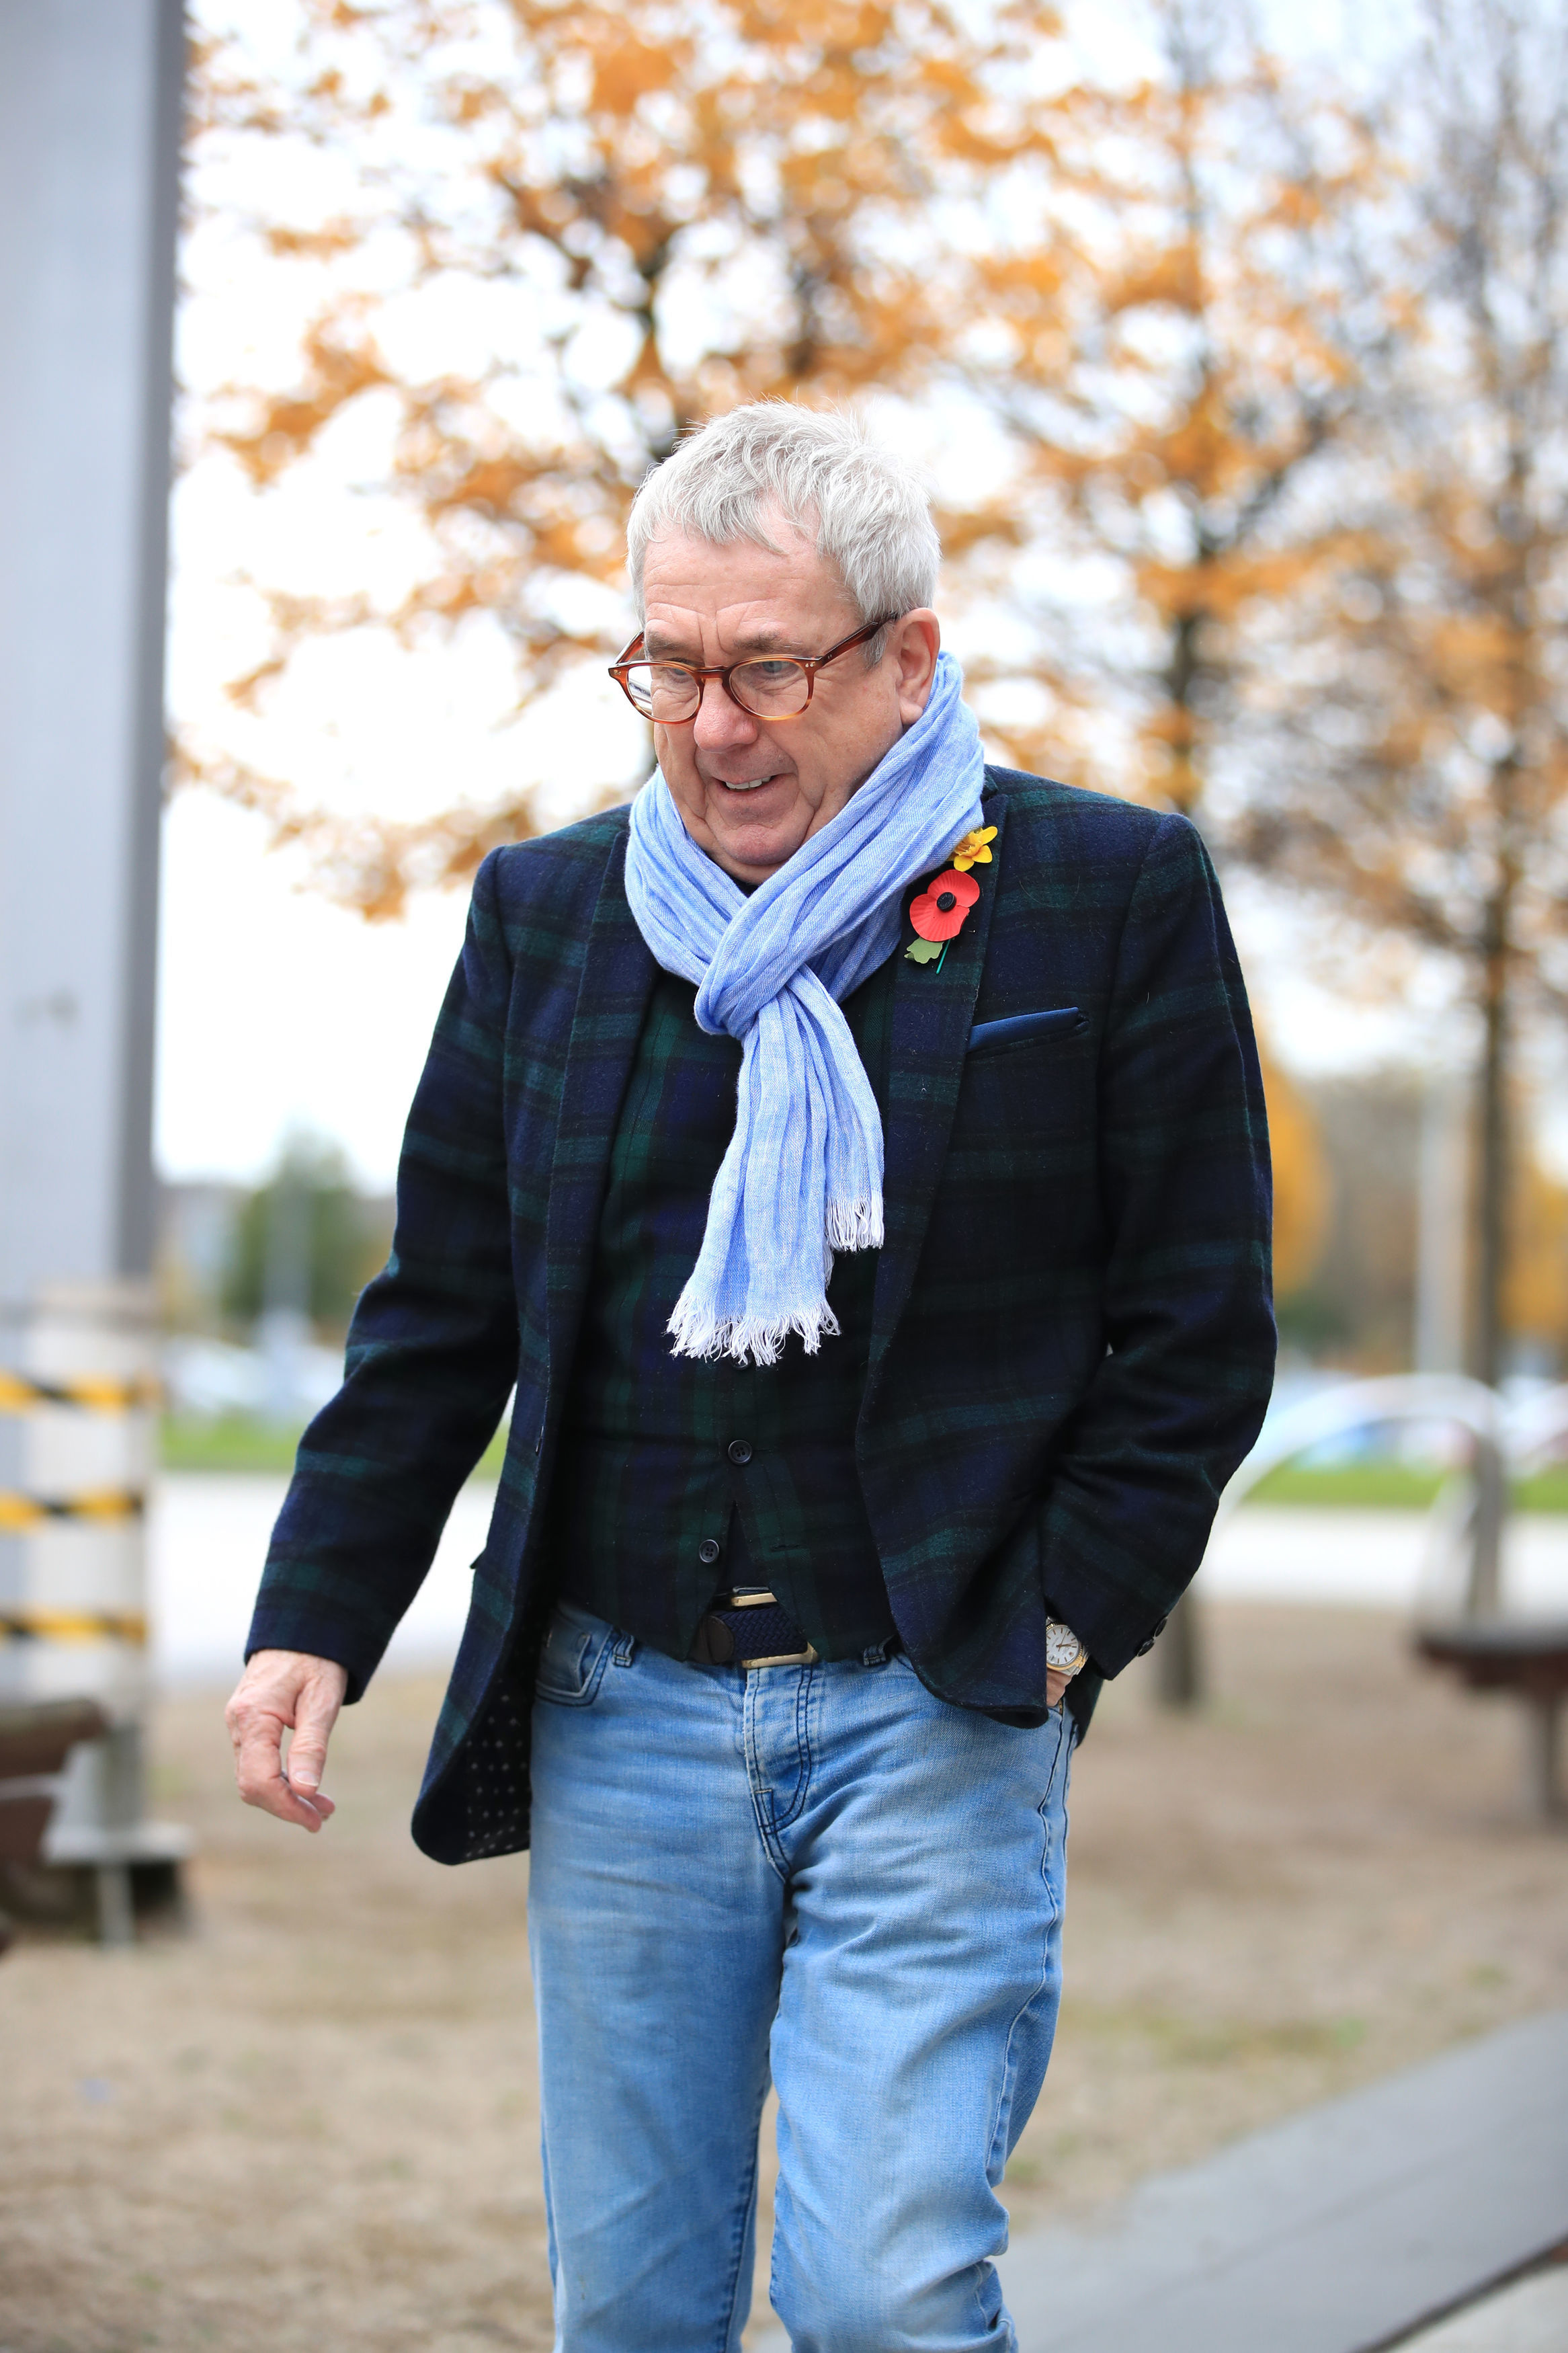 Victim Andy Potts, 67, leaving Tameside Magistrates' Court, in Ashton-under-Lyne, where Emmerdale actor Mark Jordon, 53, has been charged with grievous bodily harm and assault. (Photo by Peter Byrne/PA Images via Getty Images)